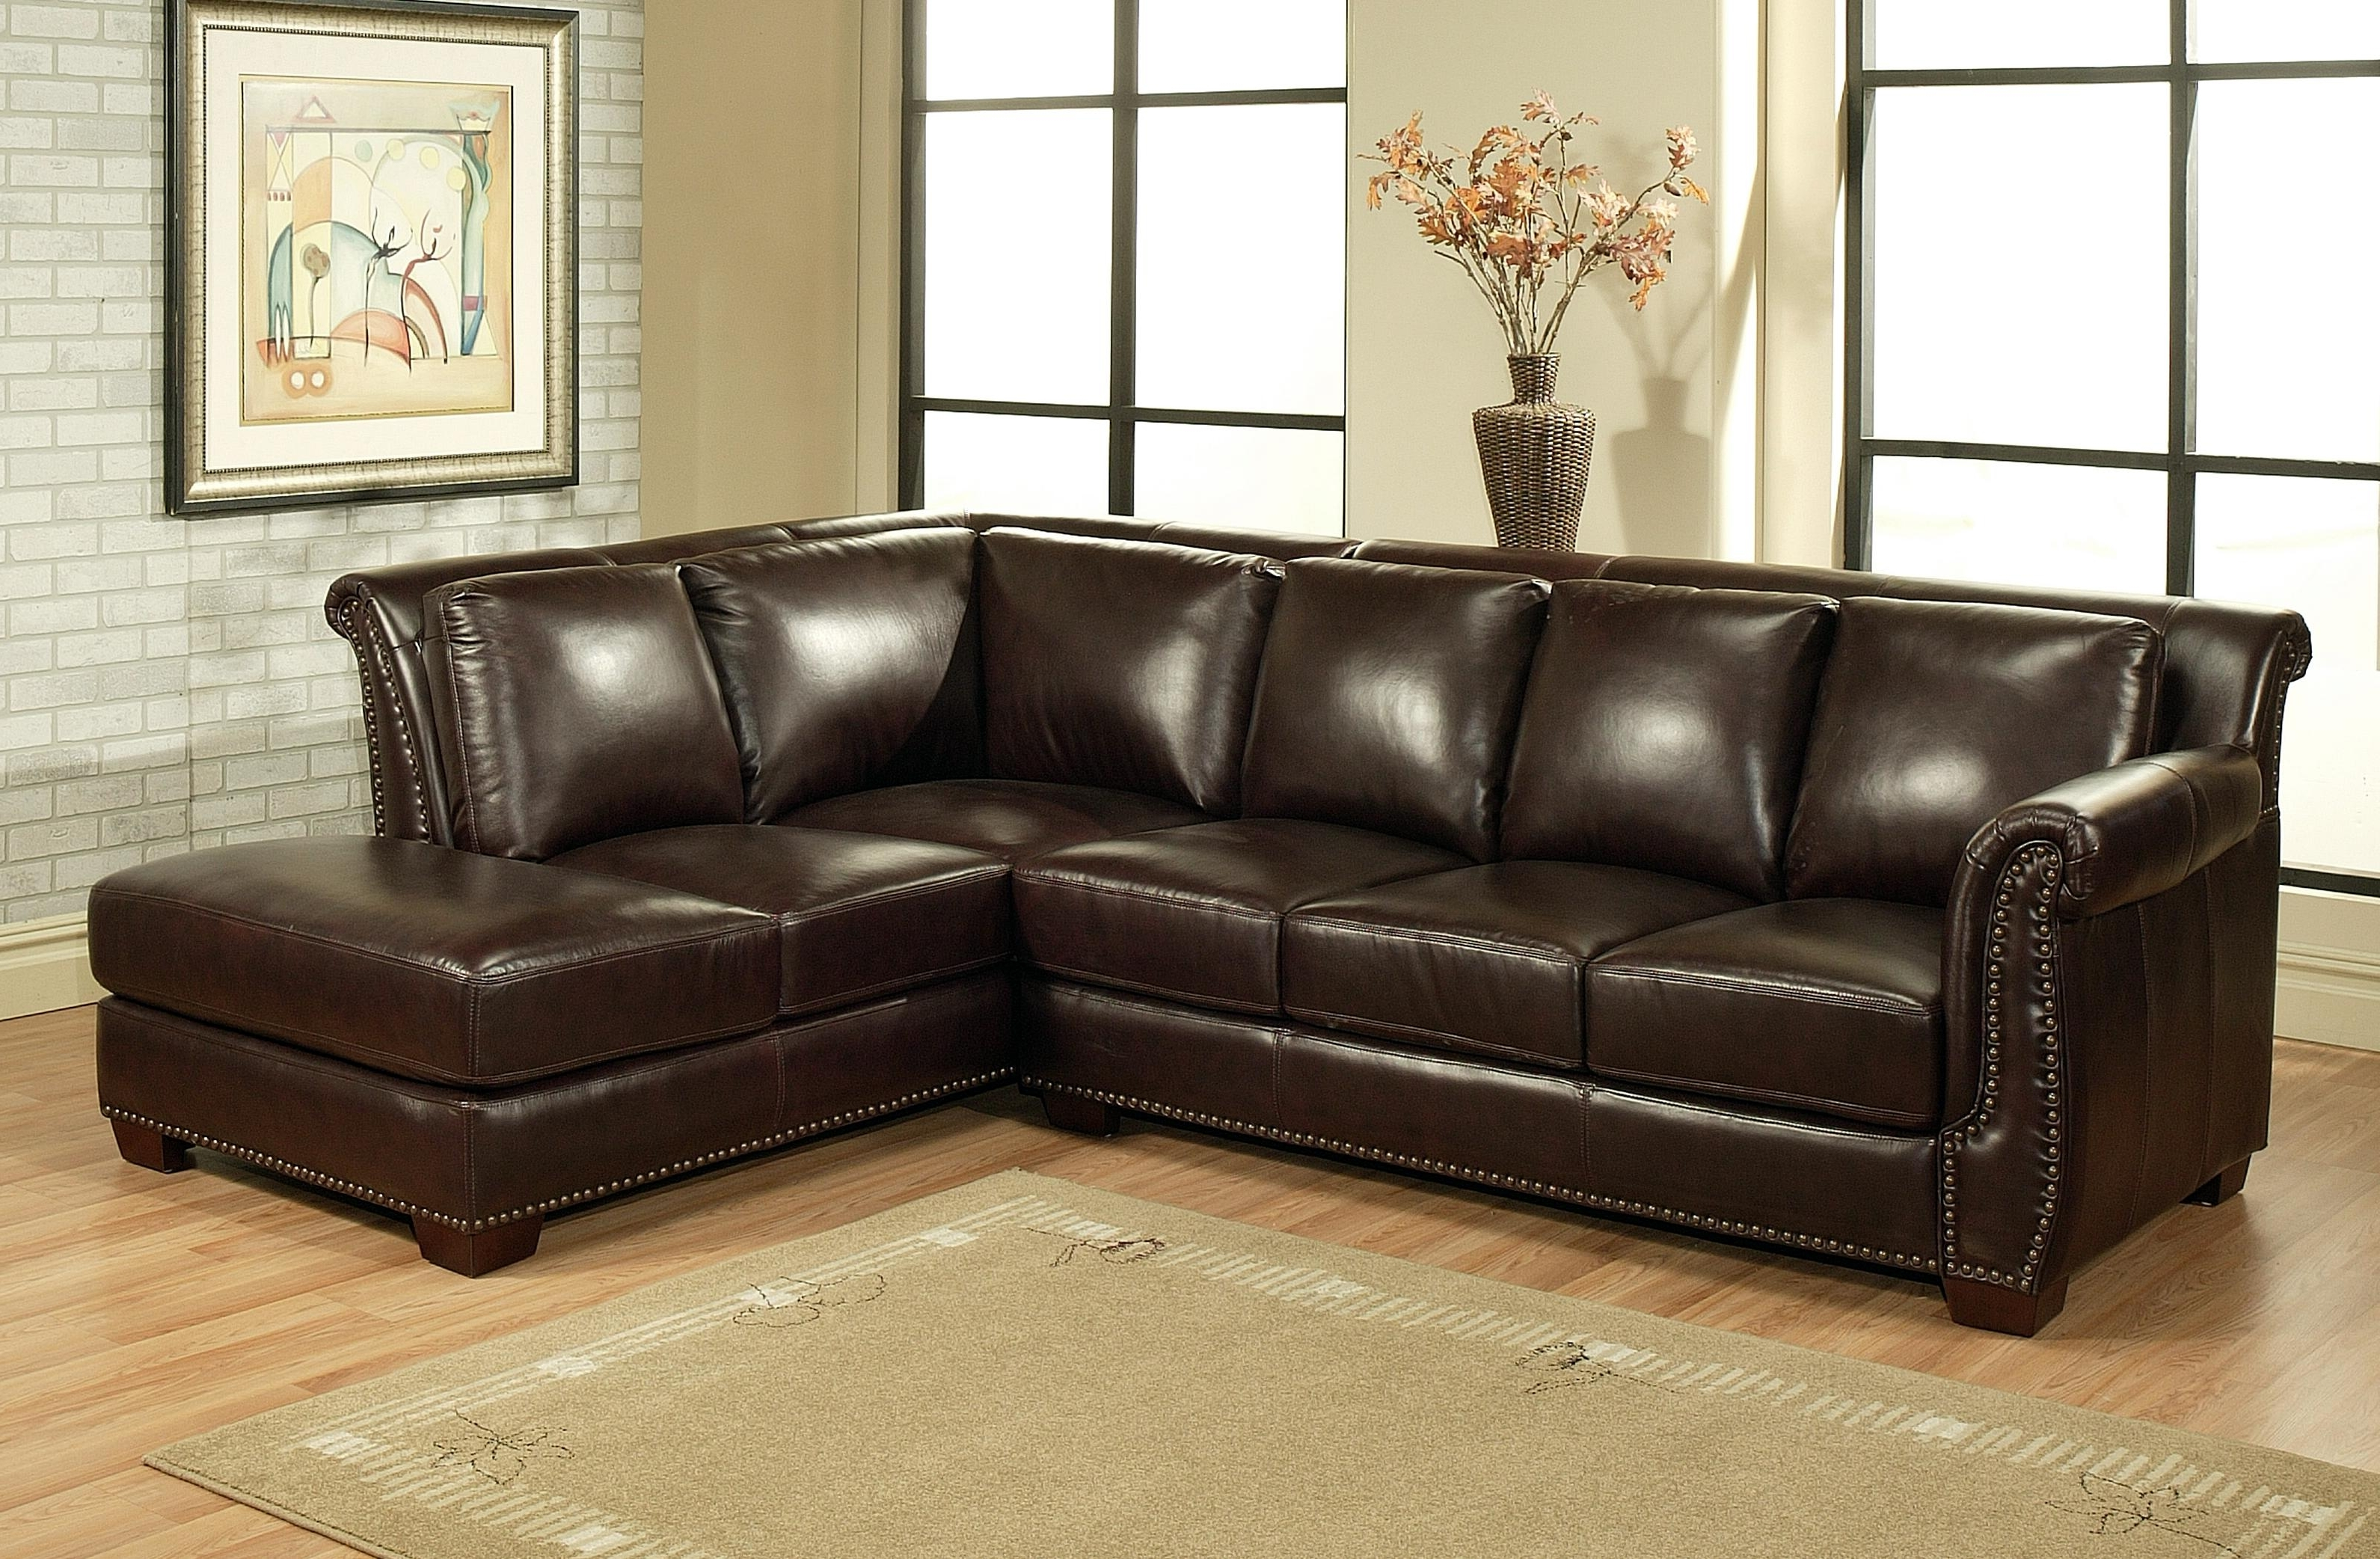 Sectional Sofas At Calgary With Favorite Best Leather Sectional Sofas 61 Modern Sofa Ideas With Leather (View 15 of 20)